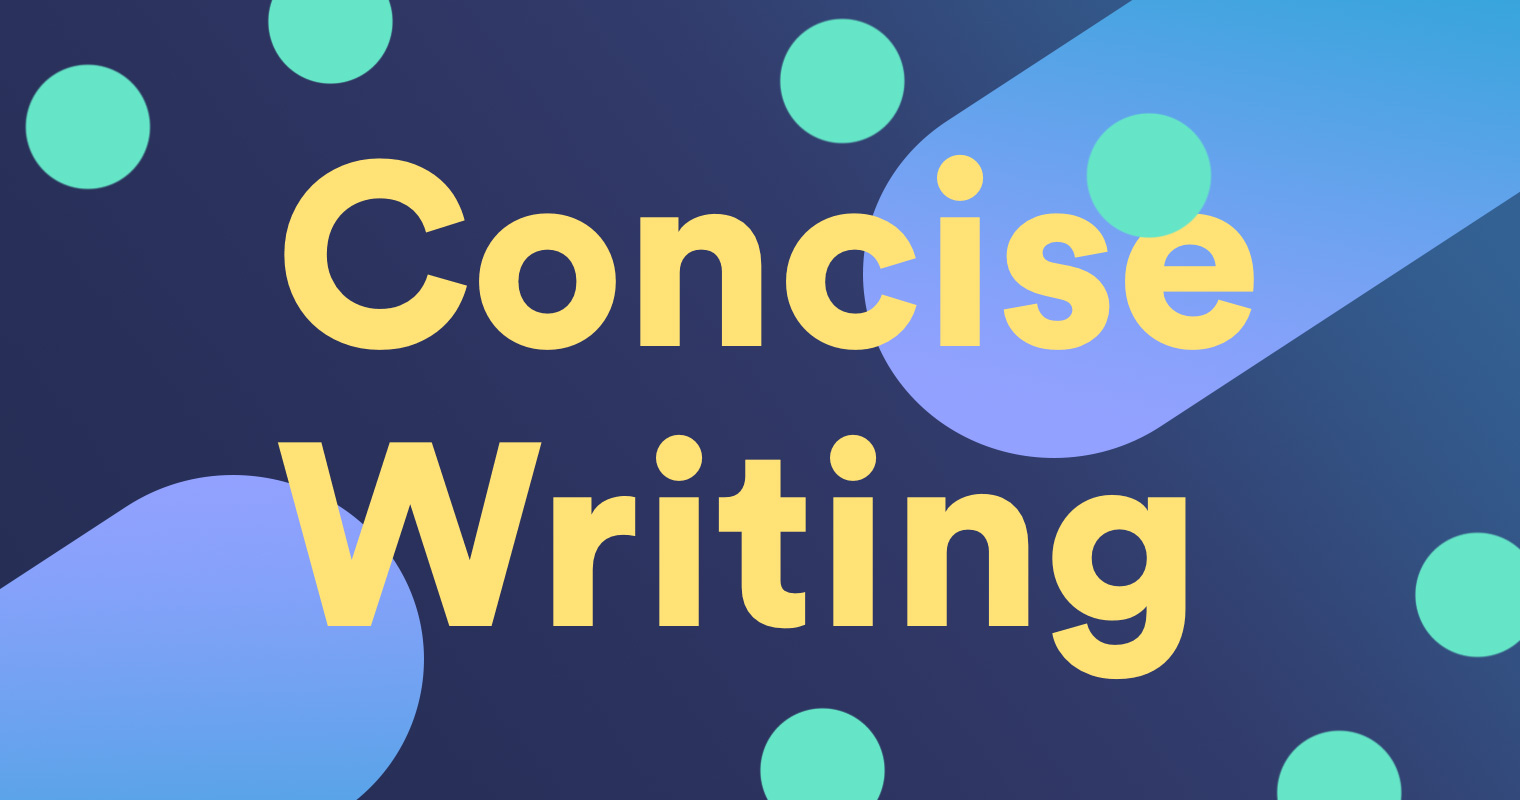 Concise Writing What Is It And Why Does It Matter